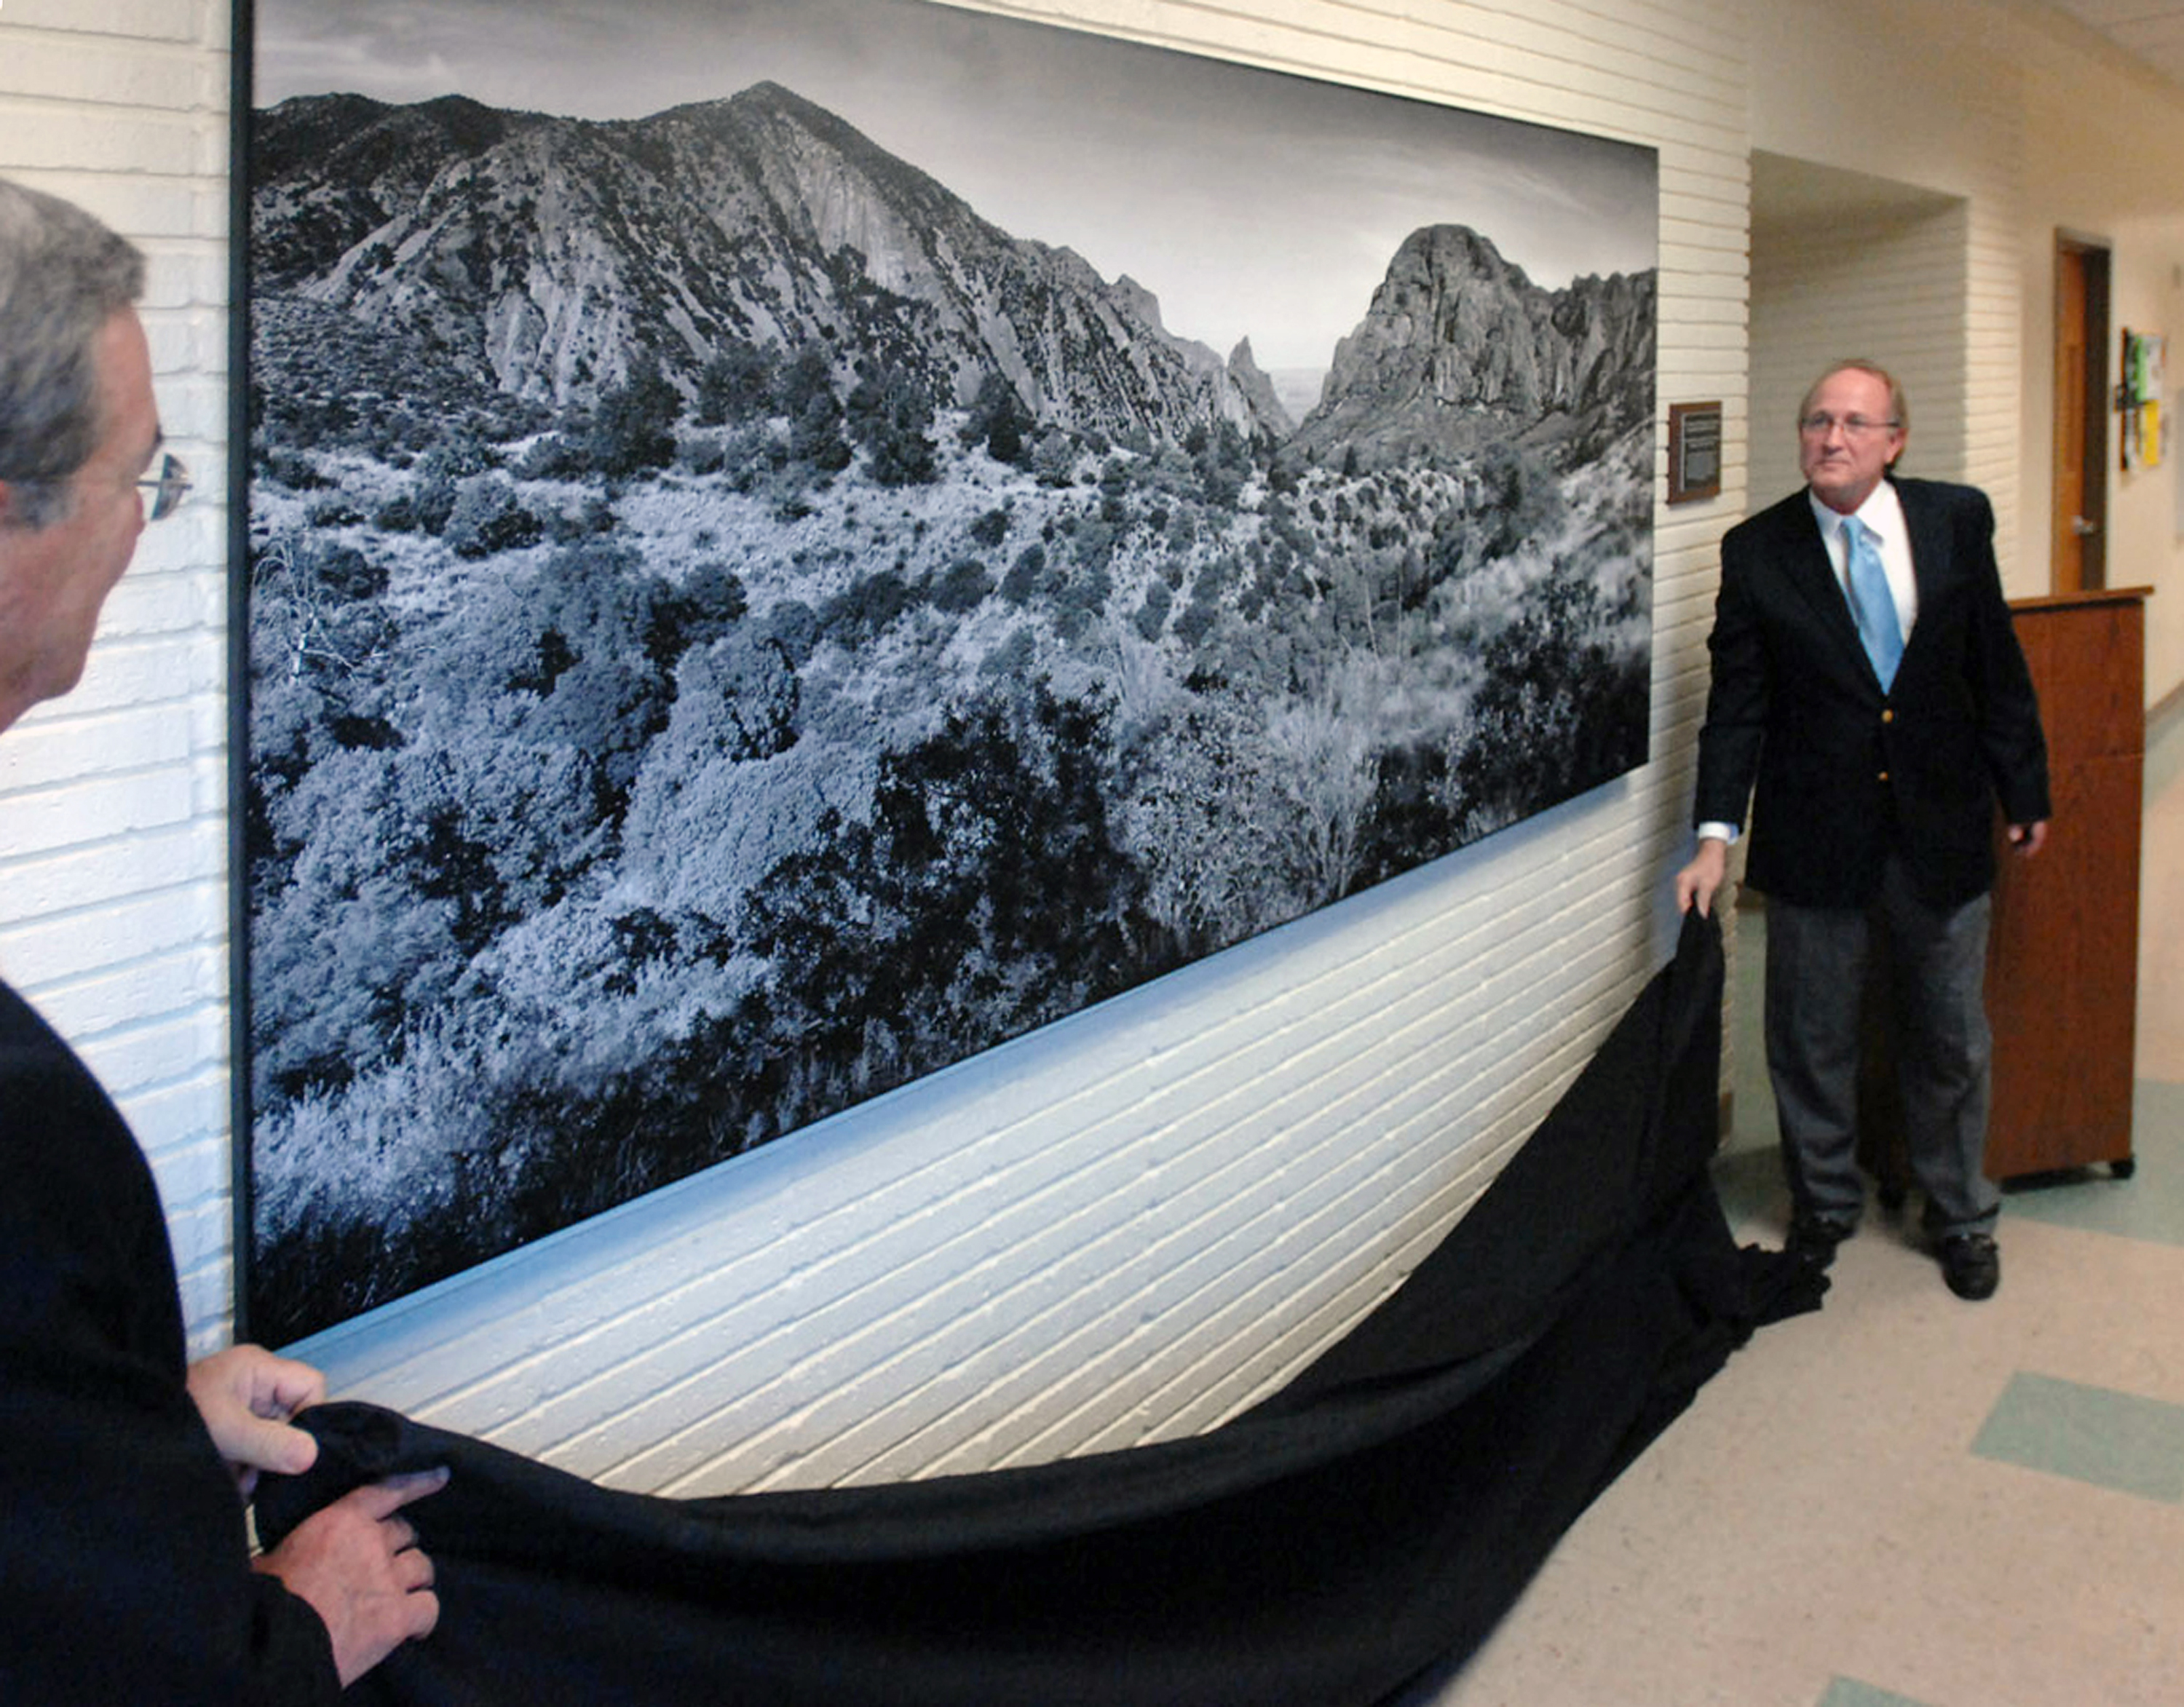 Two representatives from Lamar University undrape a 9-foot by 4-foot panoramic photograph of Big Bend National Park, taken by Richard Ashmore, geology instructor at Lone Star College-Montgomery. Ashmore was commissioned by Lamar to produce the image.